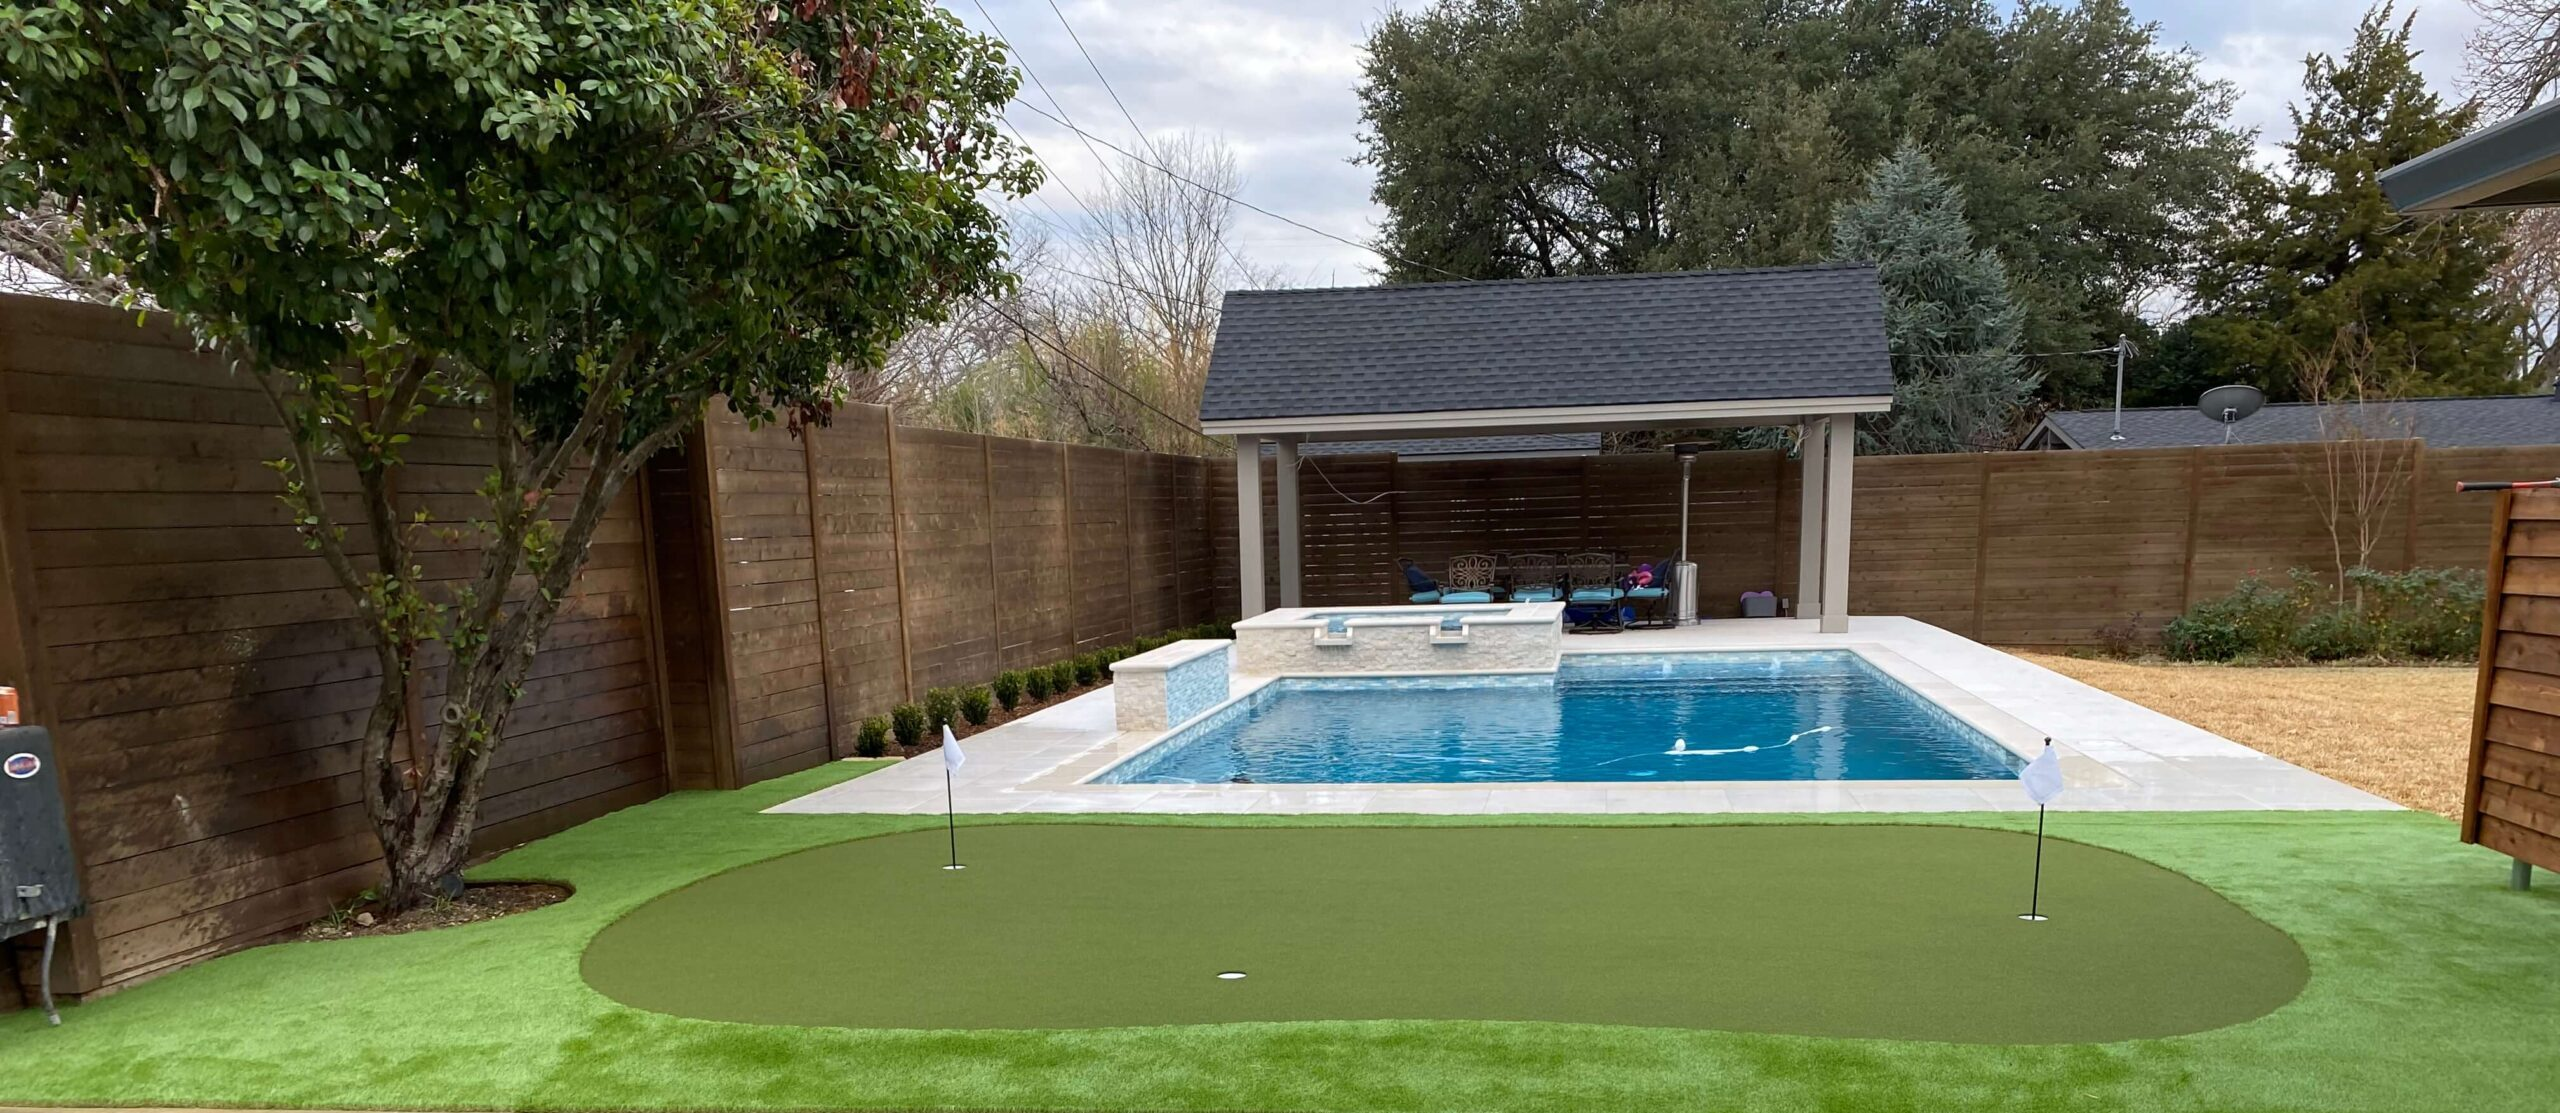 backyard with artificial turf and putting green